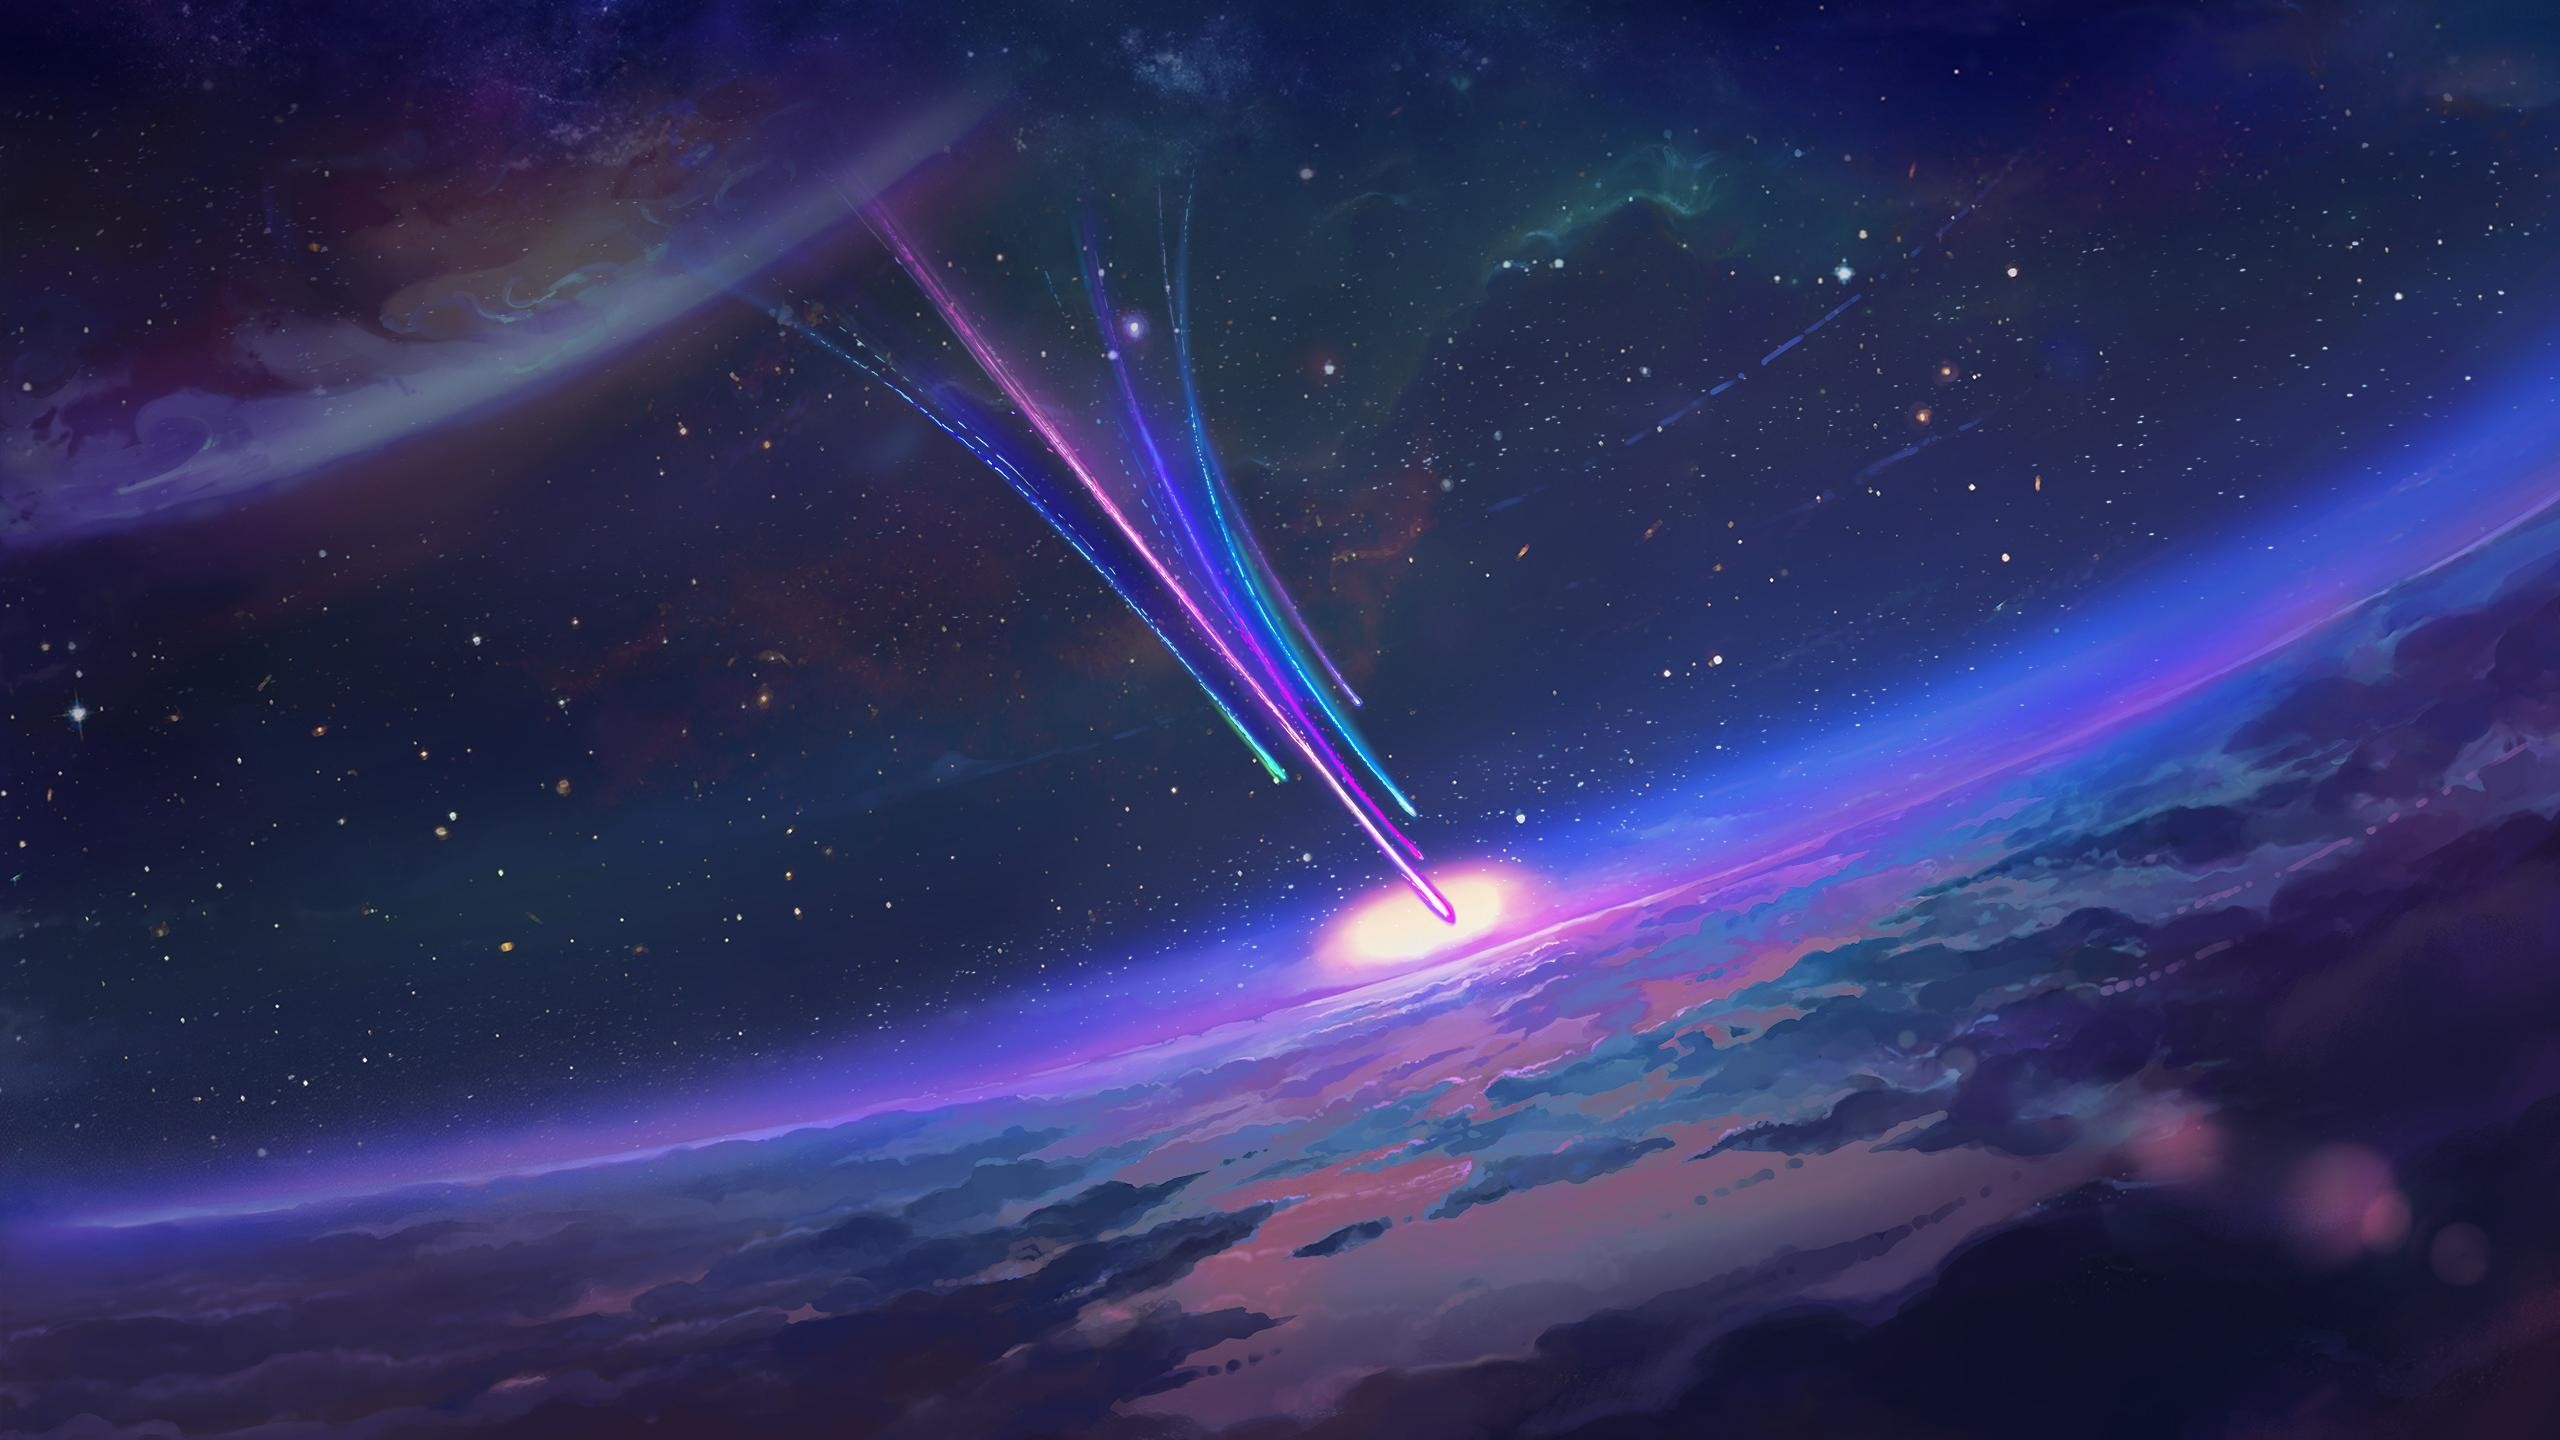 Cute Wallpapers For Girls In The Fall Star Guardian Wallpaper 183 ① Download Free Beautiful High